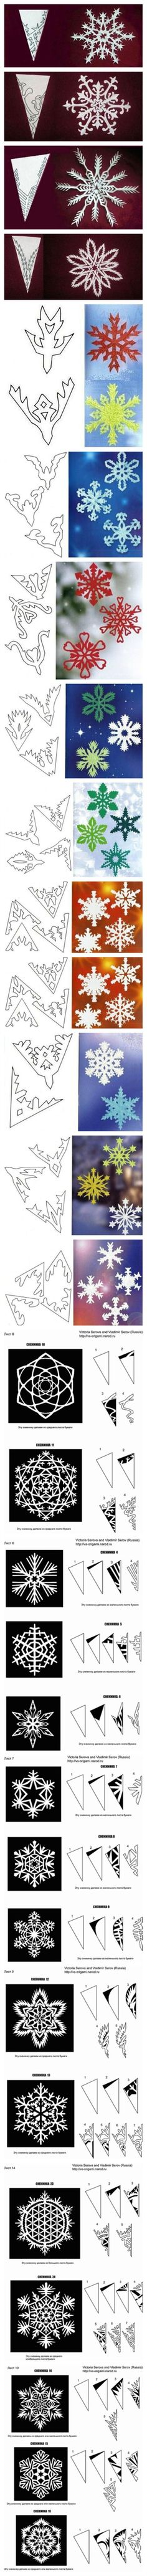 How to make awesome snowflake designs!